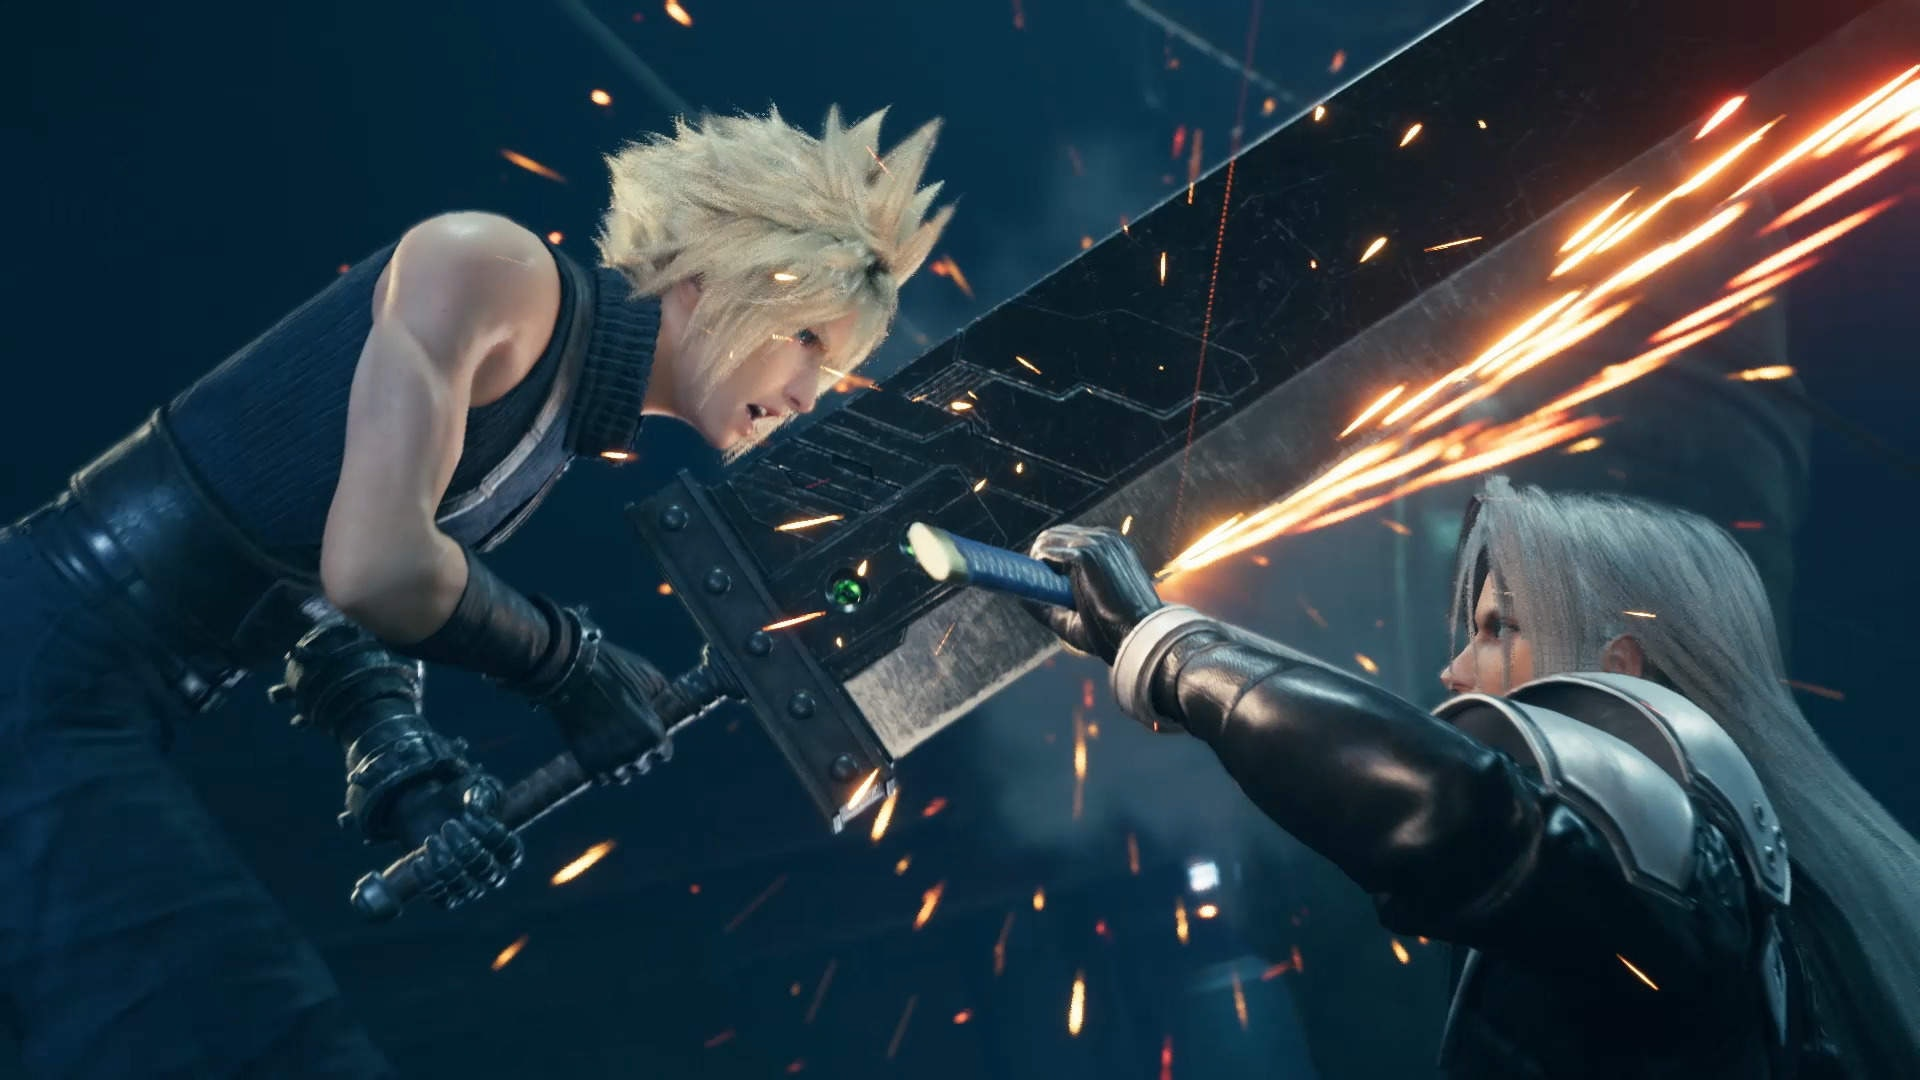 Final Fantasy 7 Remake' Part 2 release date, characters, story, and  timelines